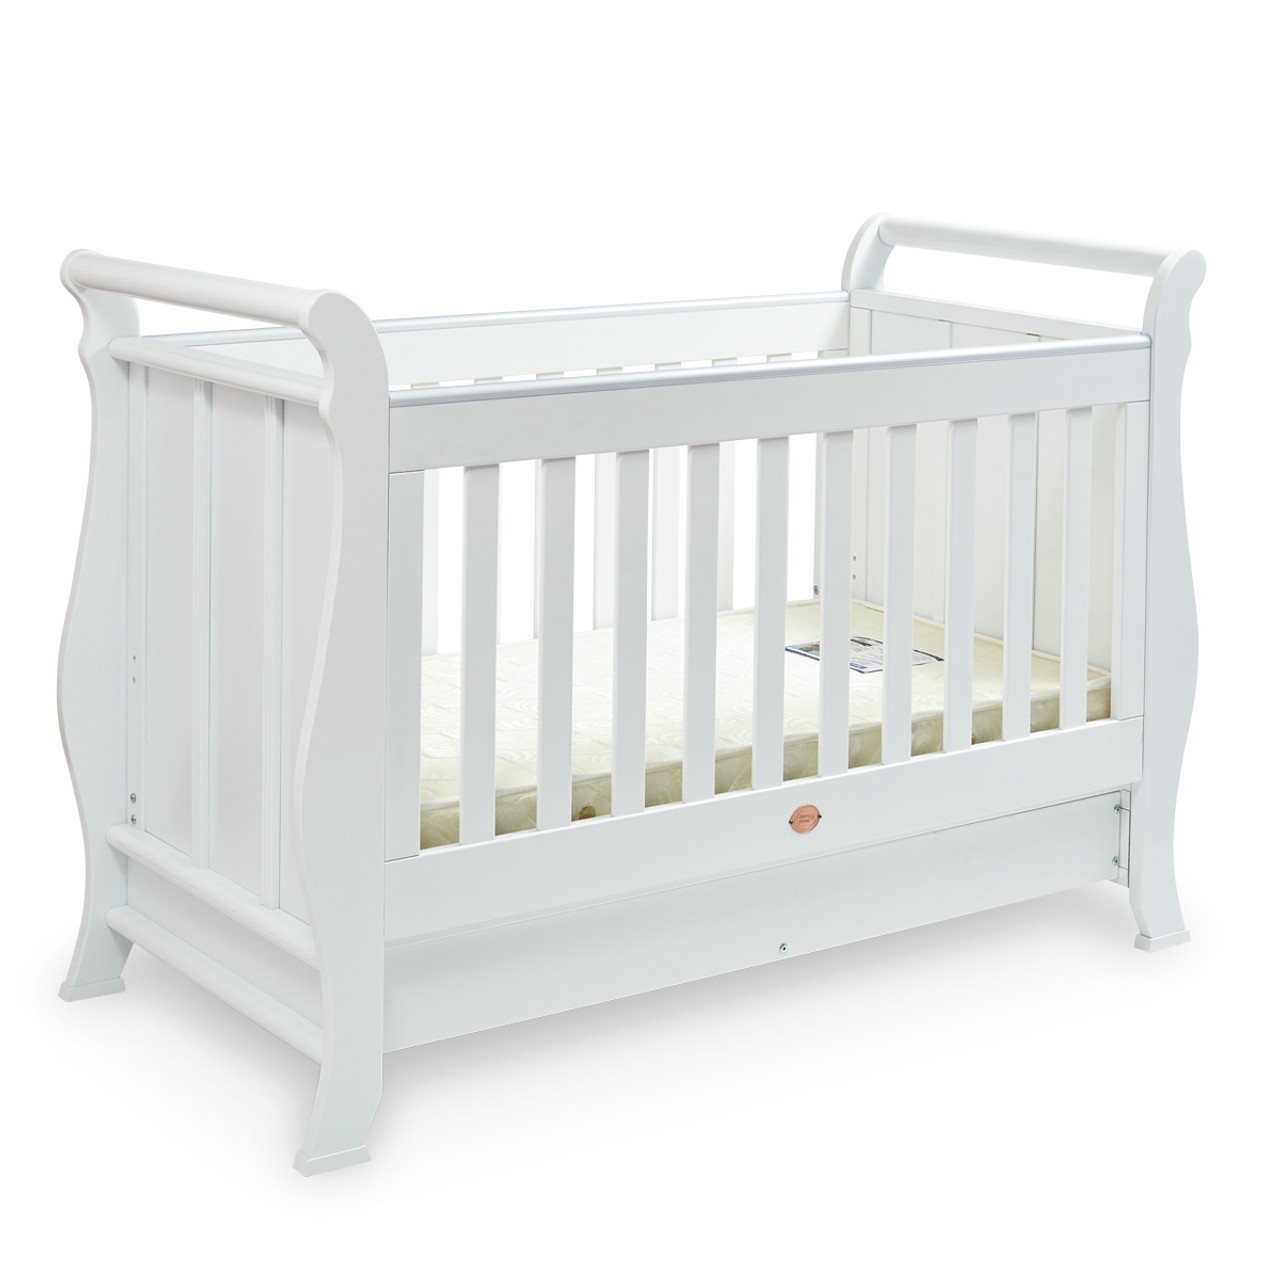 Baby Cradle Dimensions Super Nanny 4 In 1 Classic Sleigh Cot Bed White